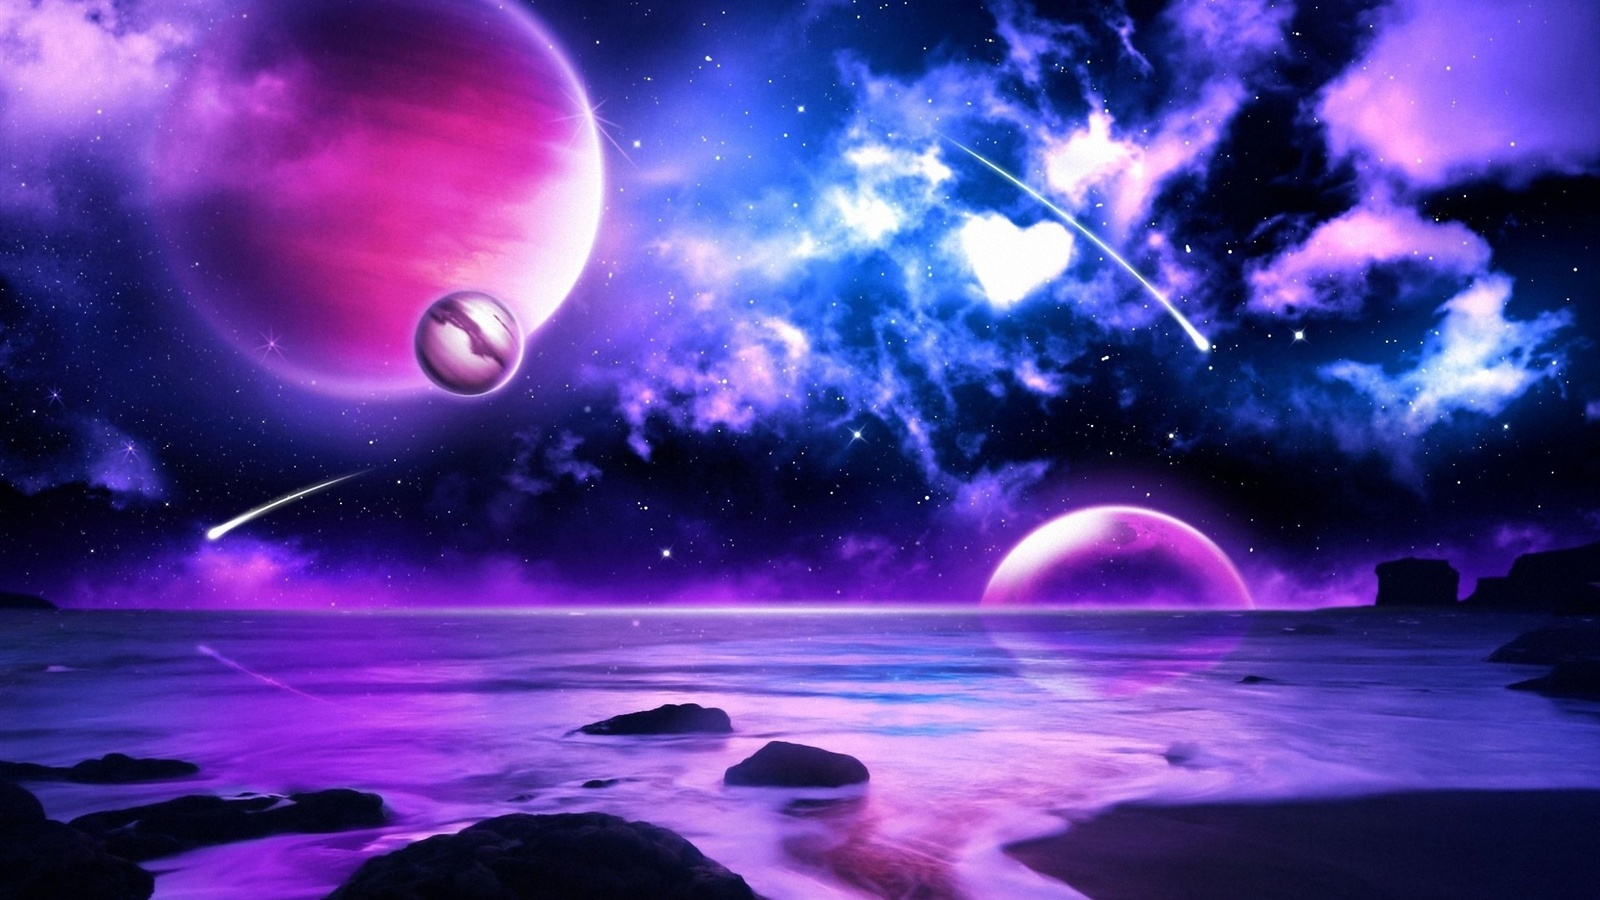 space wallpapers 1600x900 - photo #46